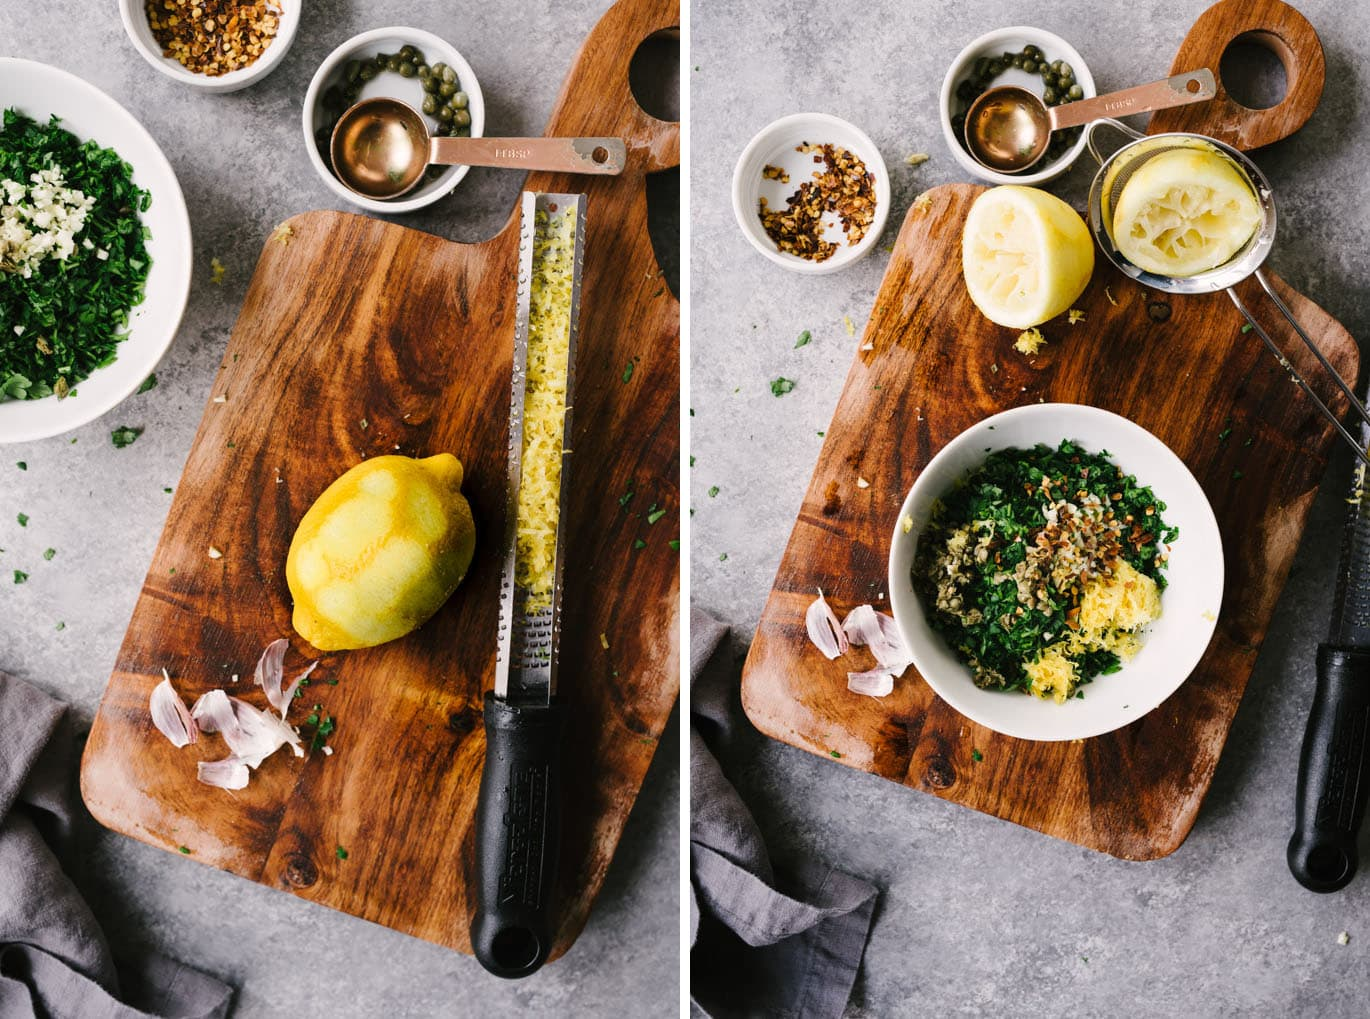 Left image - a zested lemon on a wood cutting board. Right image - a small white bowl filled with ingredients for italian salsa verde on a wood cutting board.